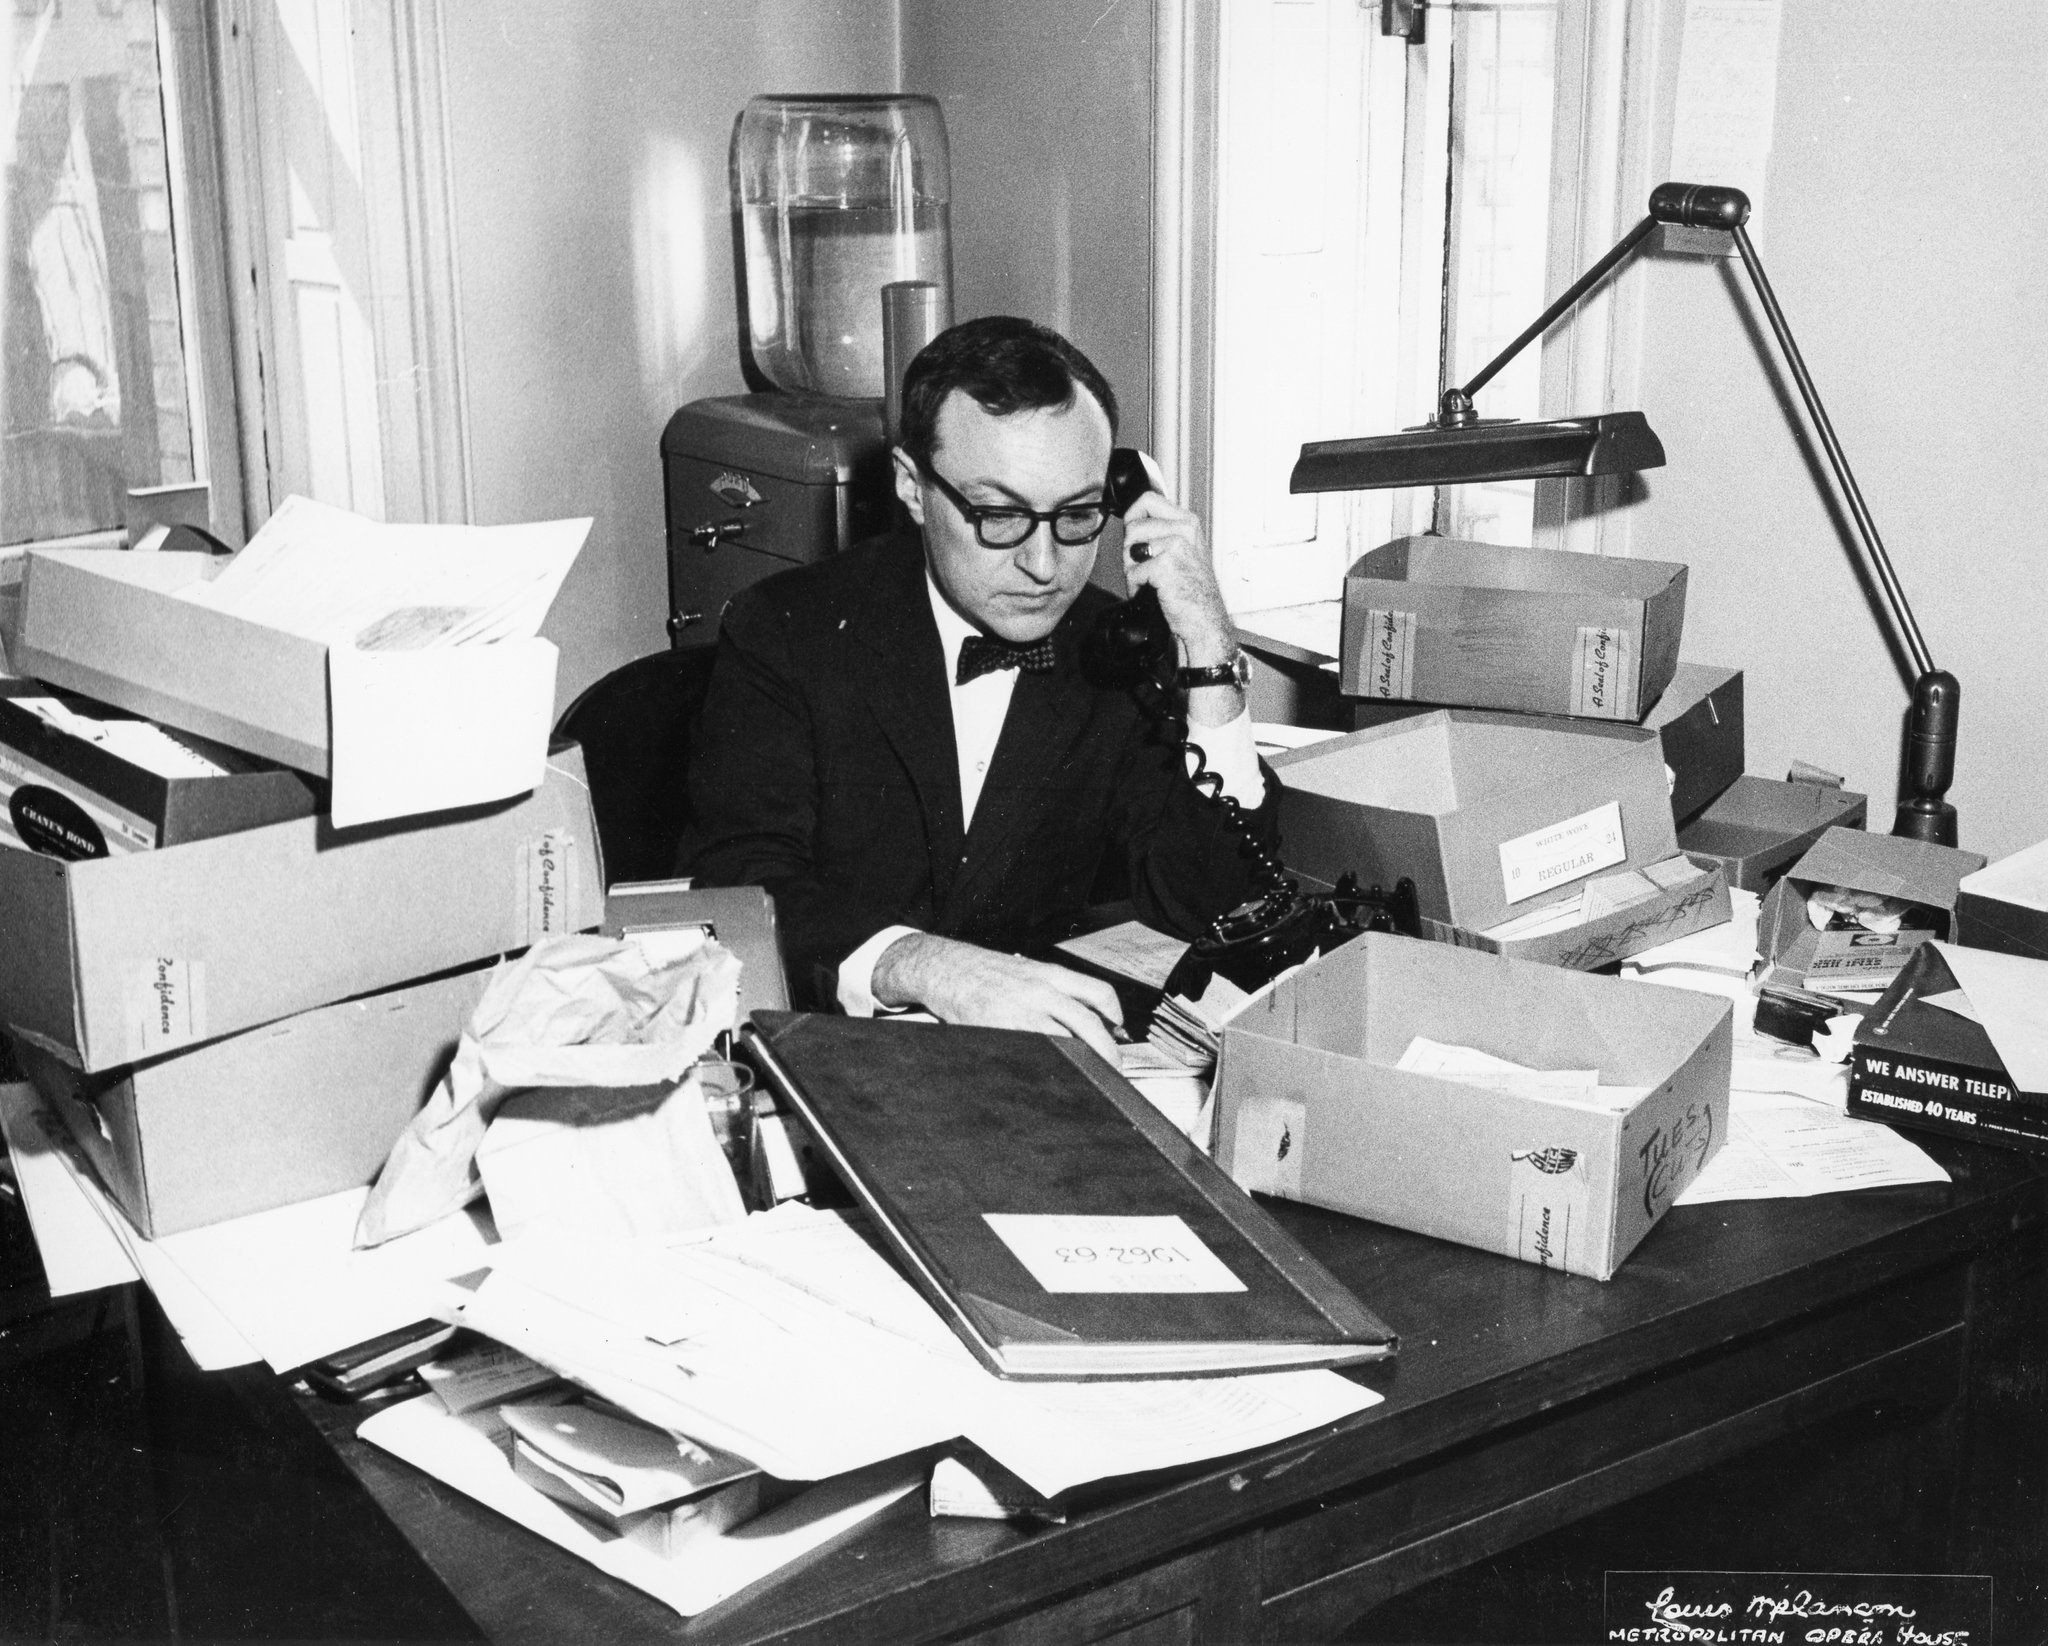 Alfred Hubay at work in the 1960s. His long career as an usher, house manager and box office chief gave him the ability to predict houses with uncanny precision. Credit Louis Melancon/The Metropolitan Opera